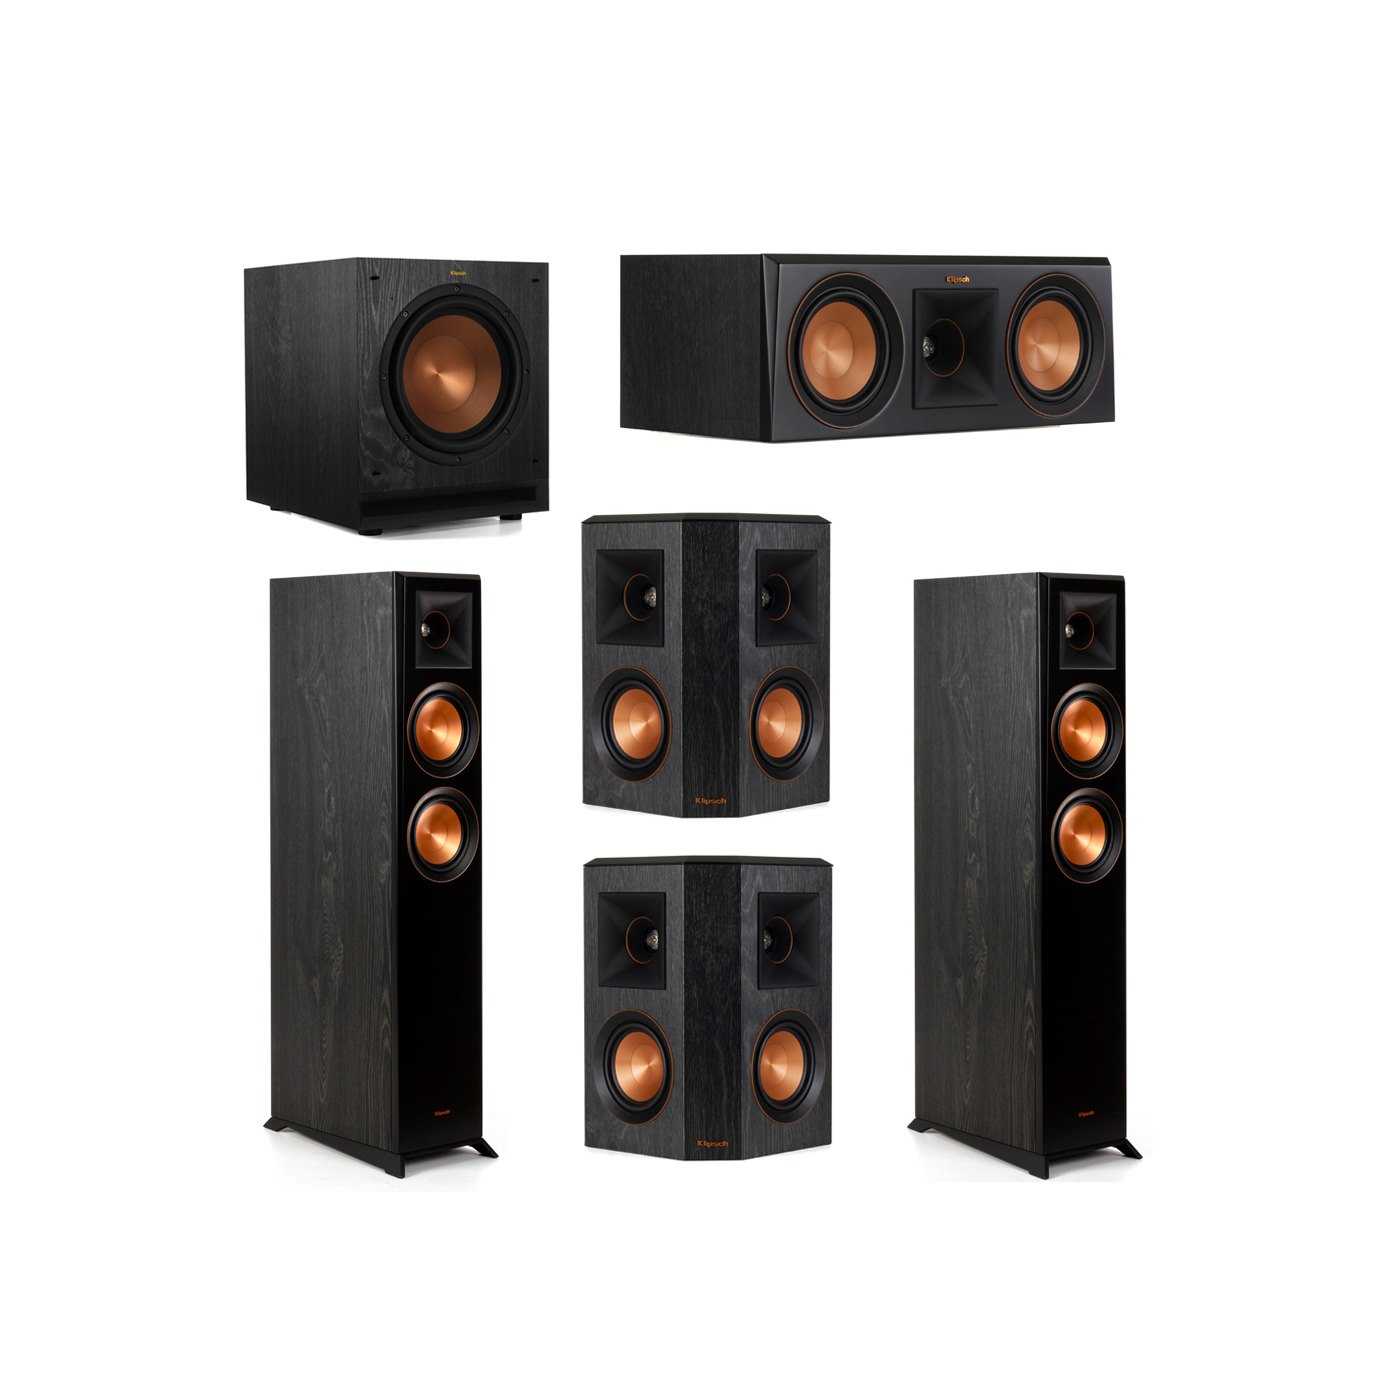 Klipsch 5.1 System with 2 RP-5000F Floorstanding Speakers, 1 Klipsch RP-500C Center Speaker, 2 Klipsch RP-402S Surround Speakers, 1 Klipsch SPL-100 Subwoofer